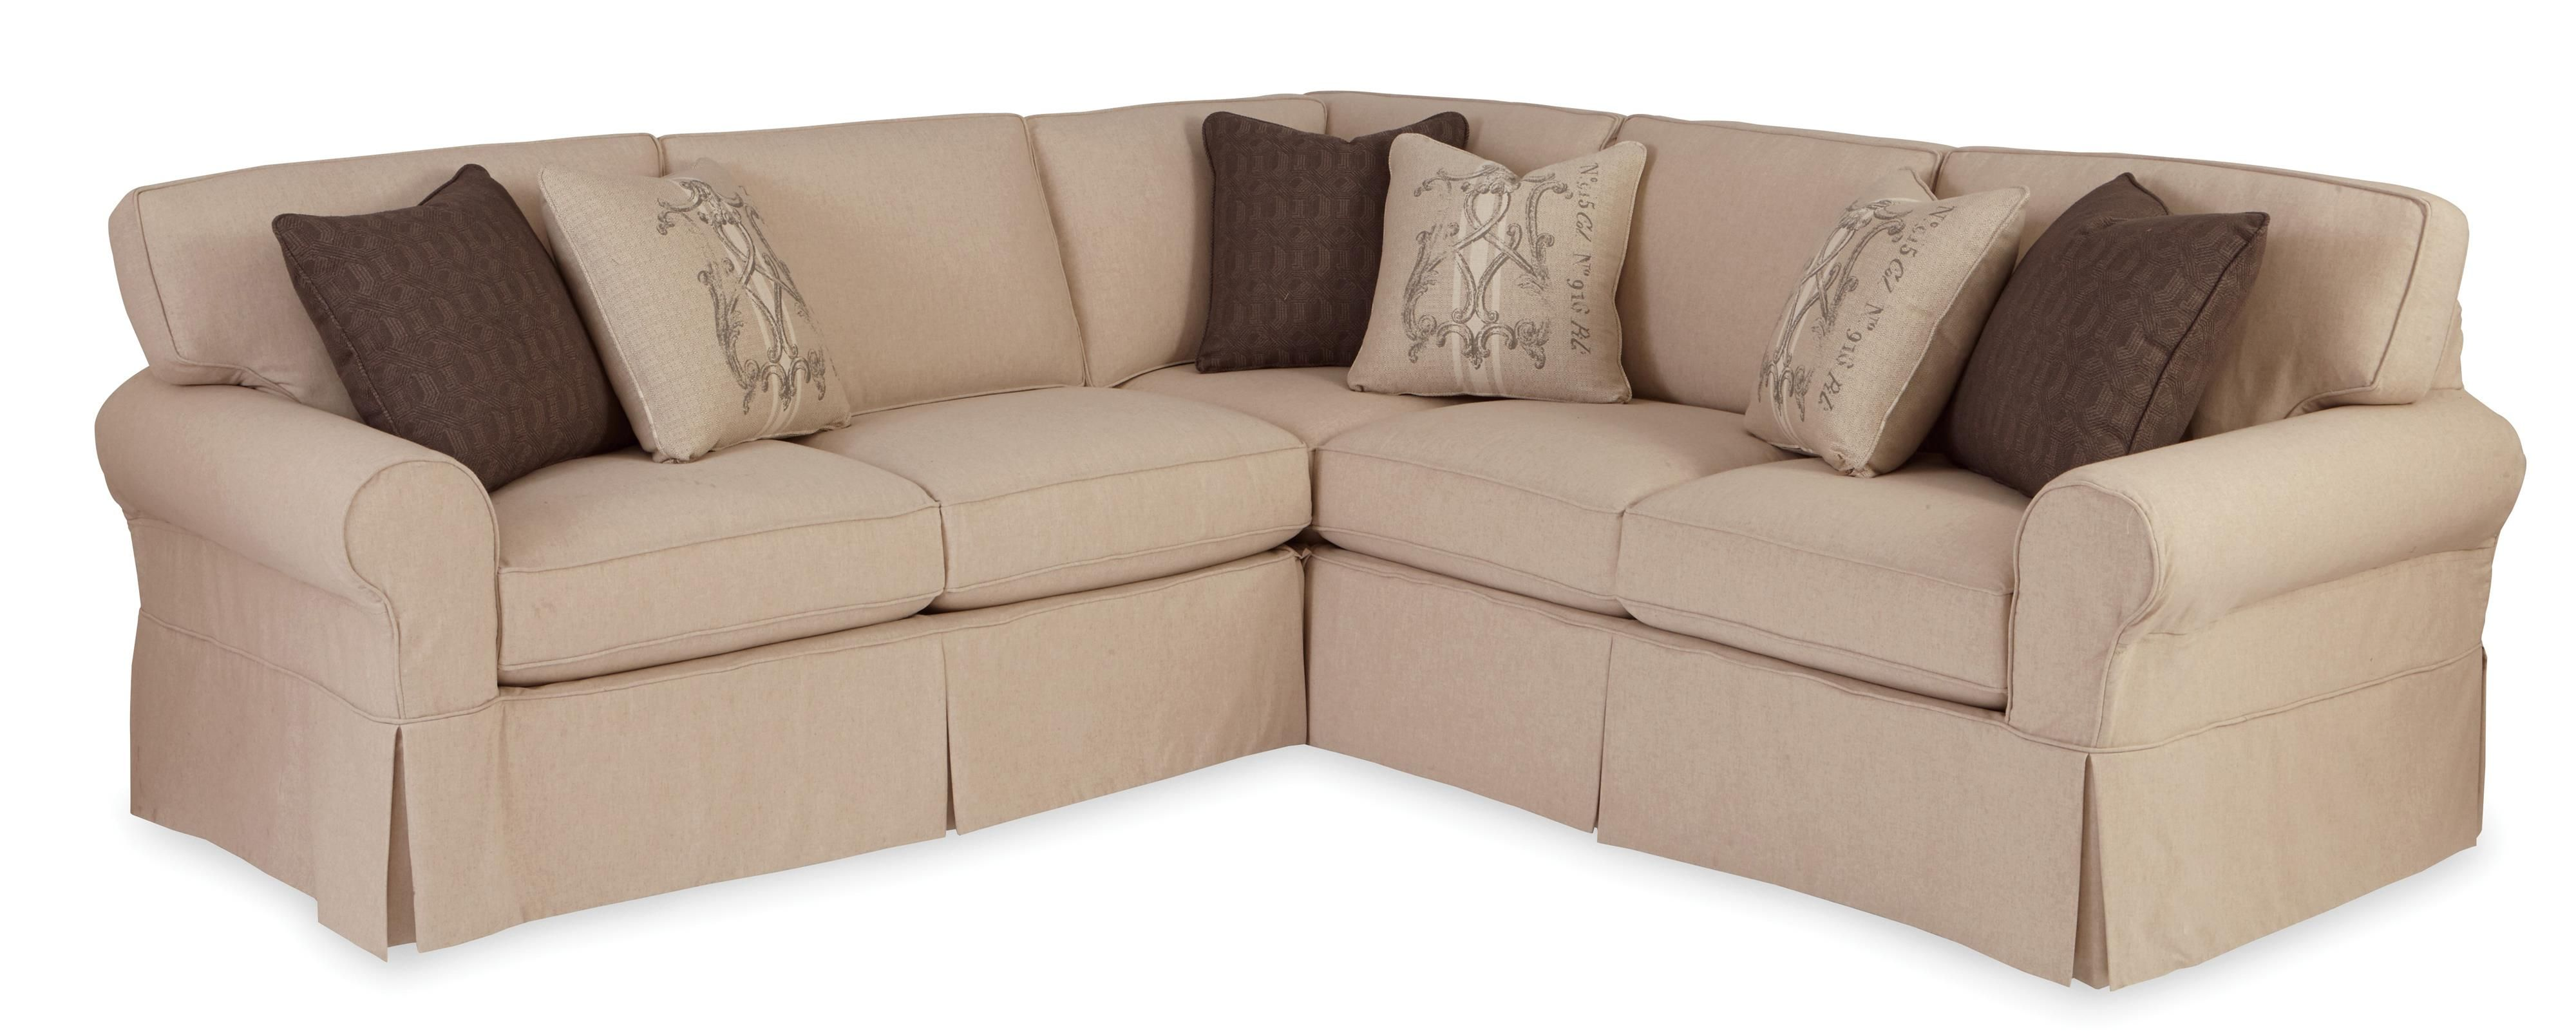 Best Pin By Monica On Living Room Sectional Sofa Slipcovers 400 x 300